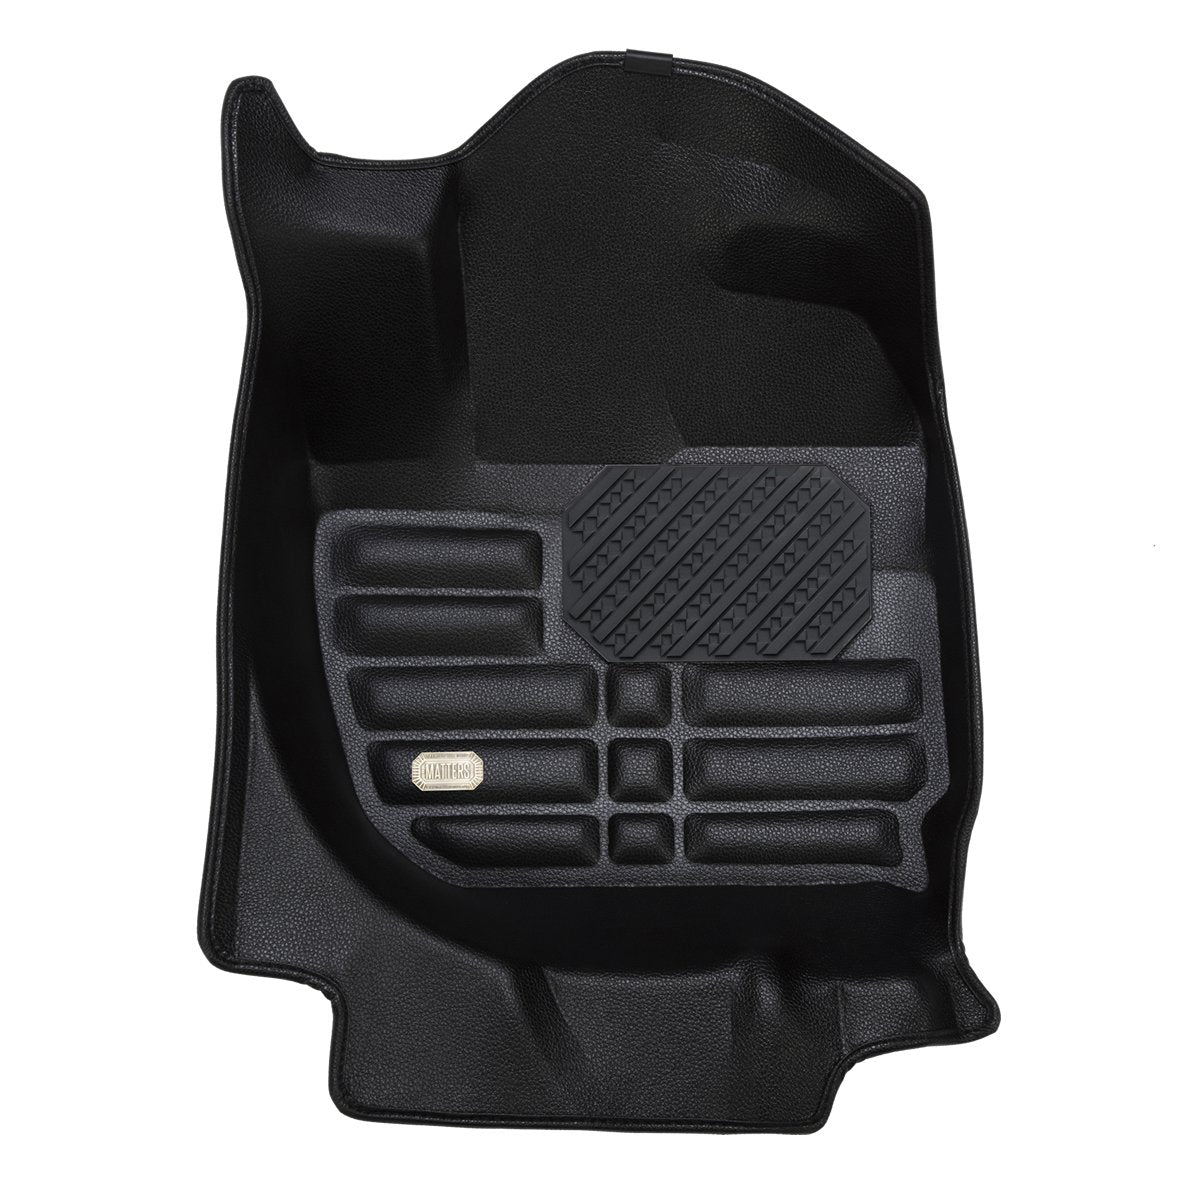 MATTERS 5D Car Mat - Renault Grand Scenic (Black)